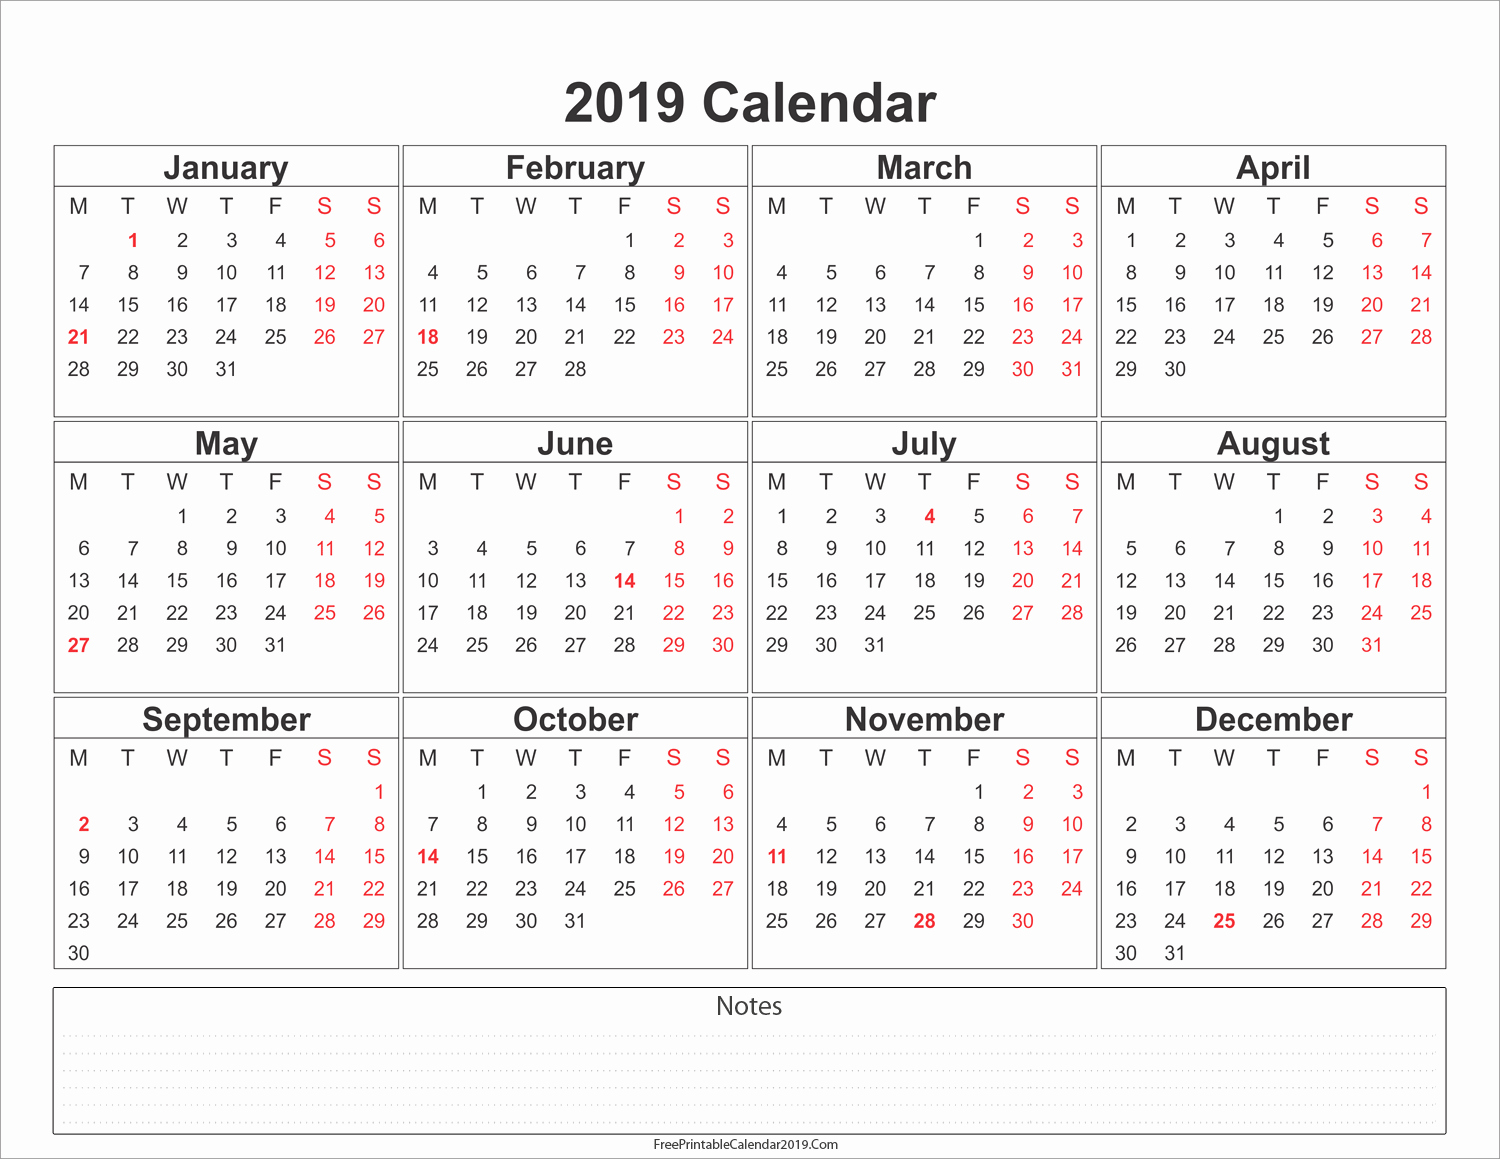 2019 Yearly Calendar with Holidays Unique Free Printable Calendar 2019 with Holidays In Word Excel Pdf